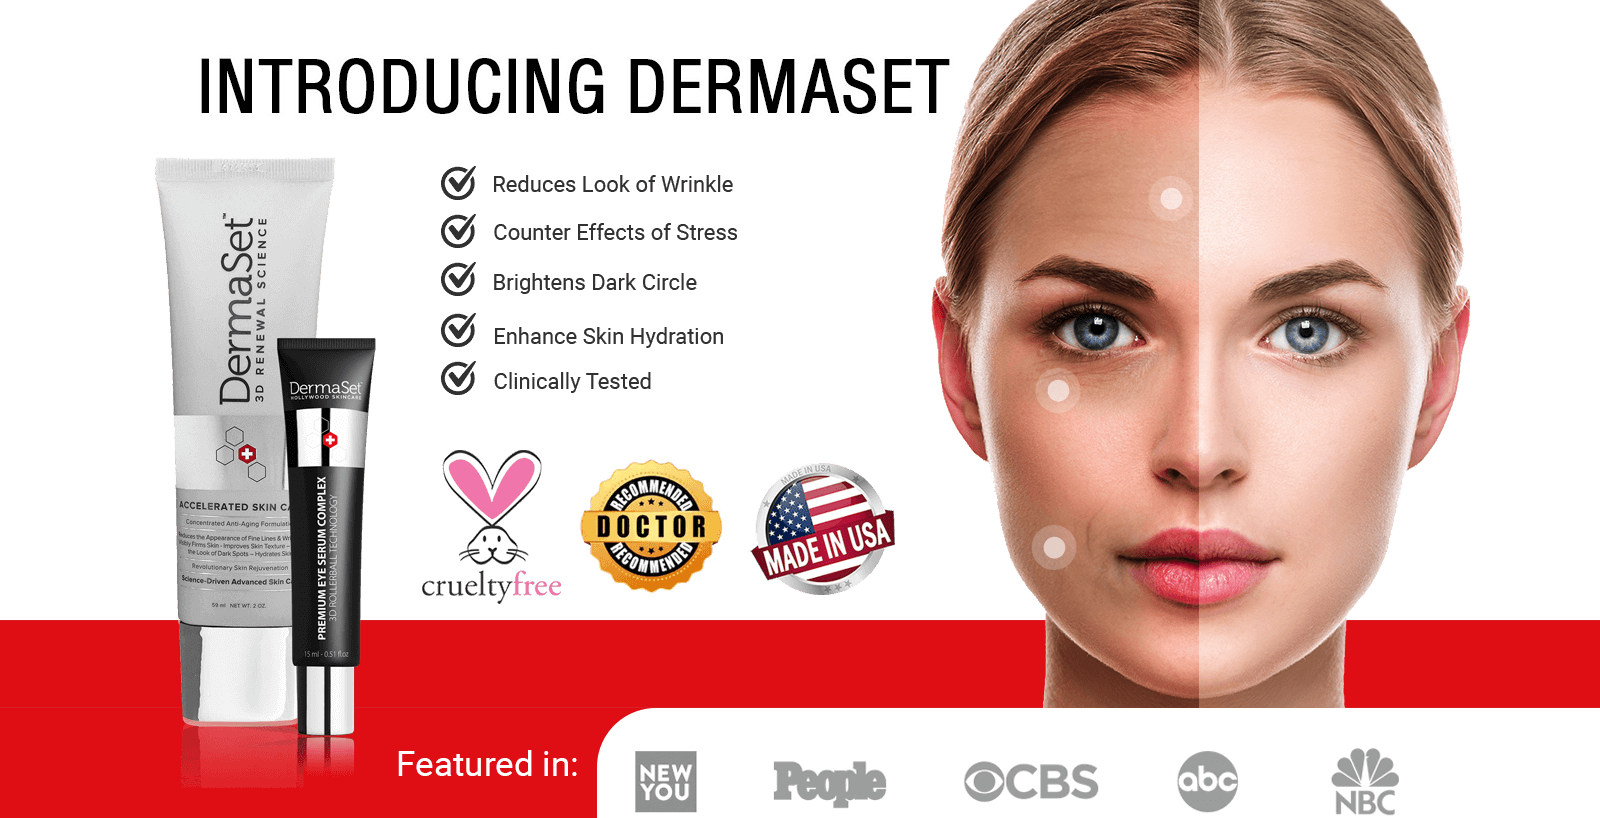 DermaSet 3D Renewal Science